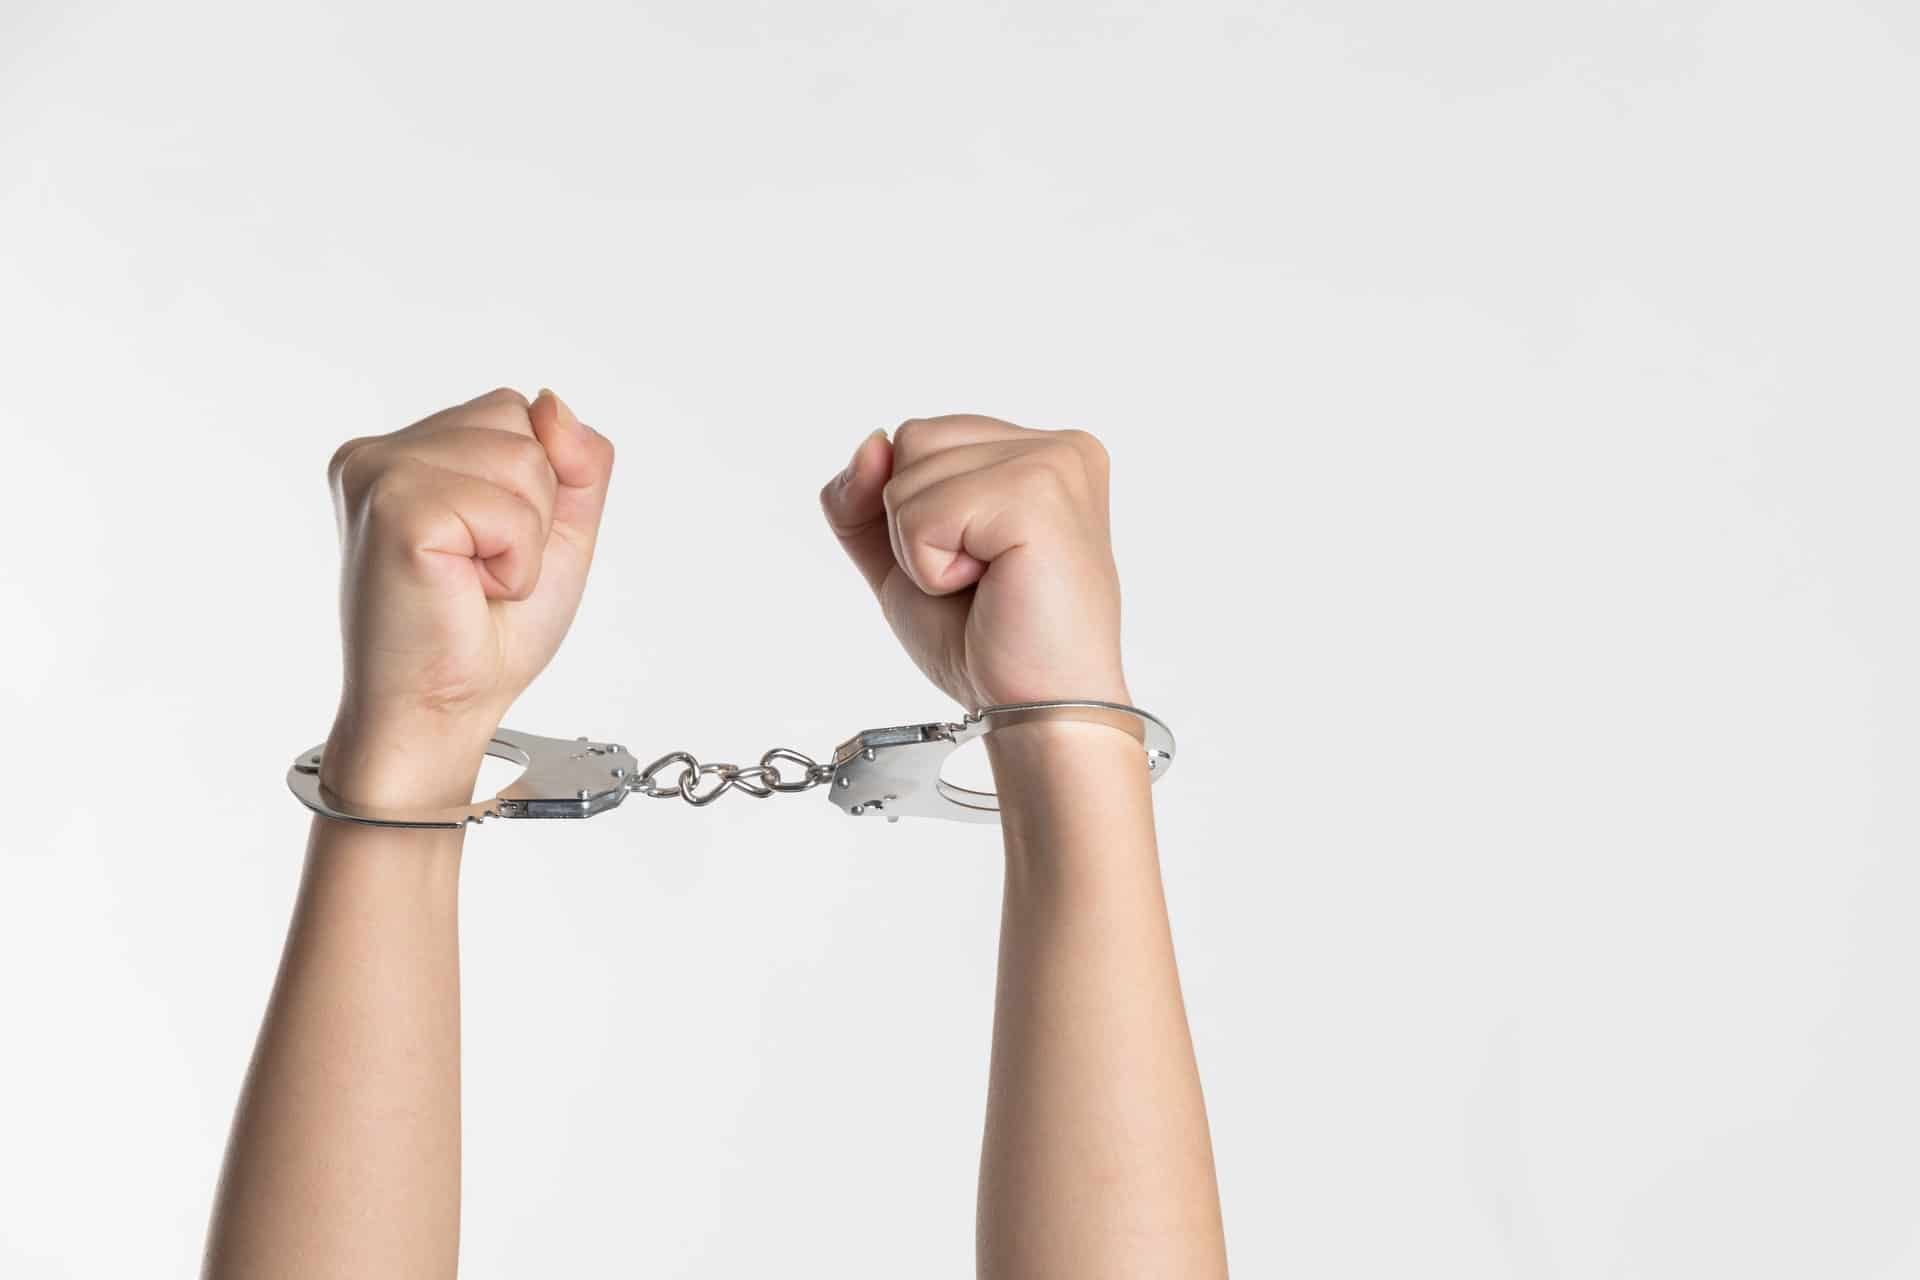 Two hands in handcuffs about to serve a community order offence